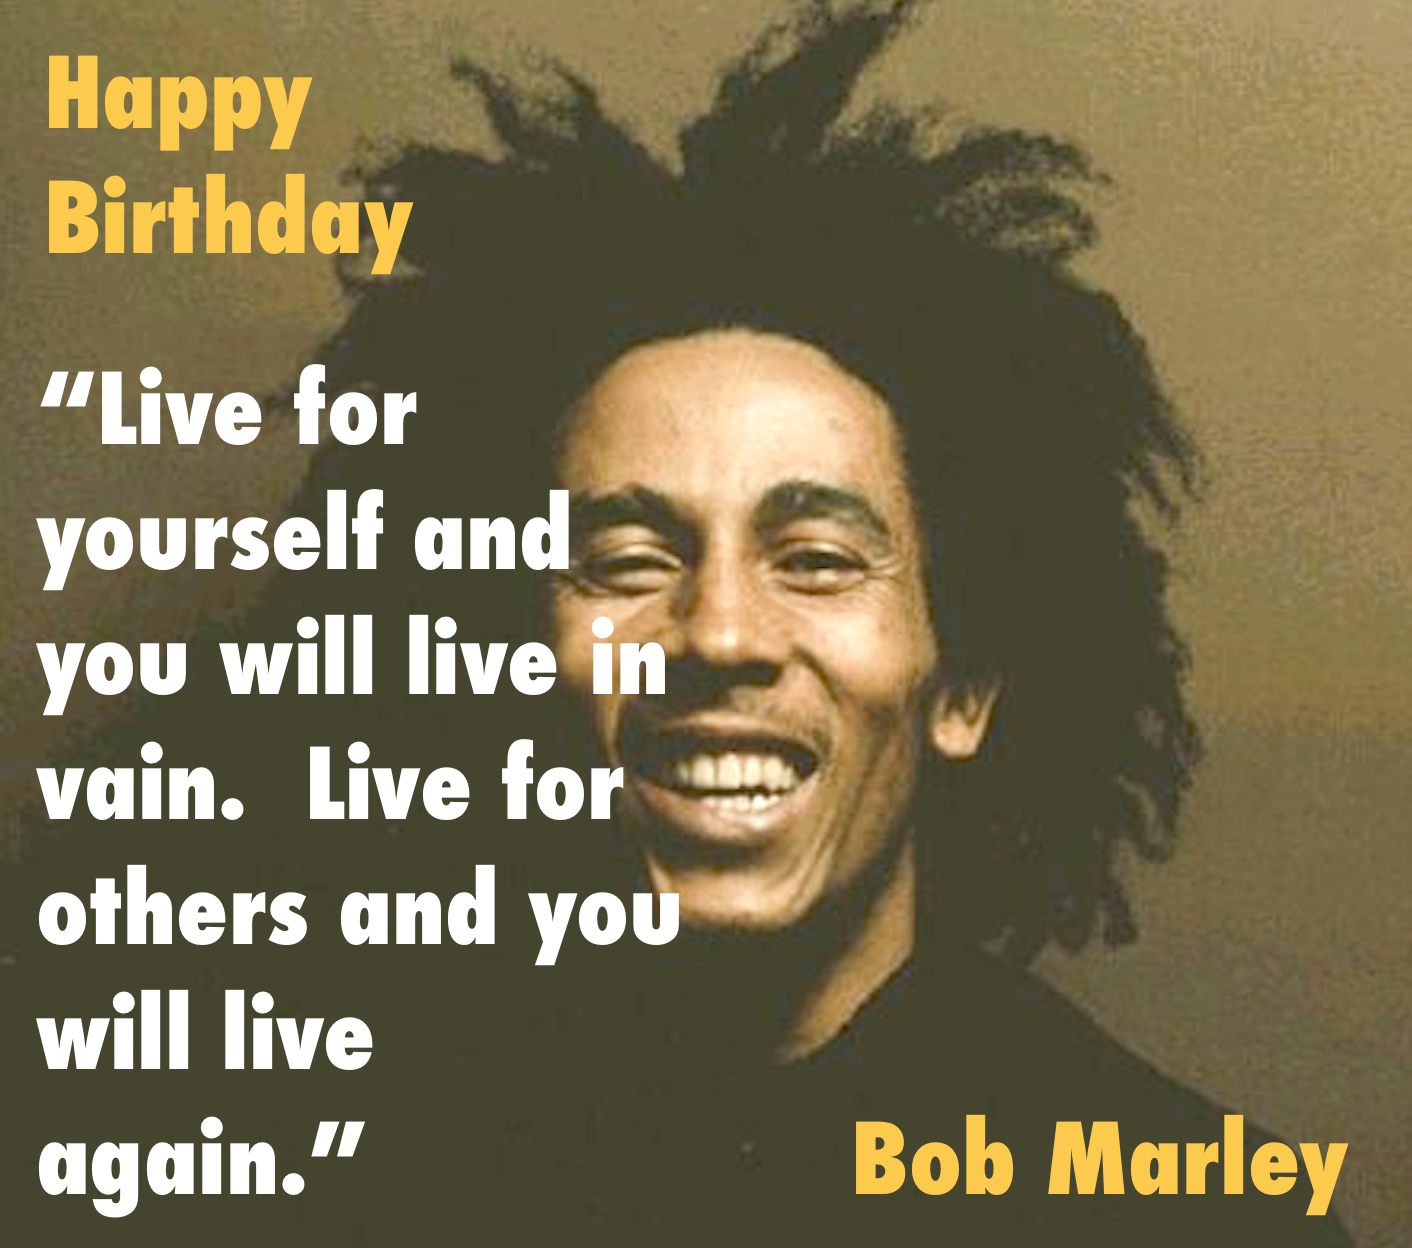 Vibes Fb Post Honoring Bob Marley S Birthday Bob Marley Bob Marley Birthday Bob Marley Quotes